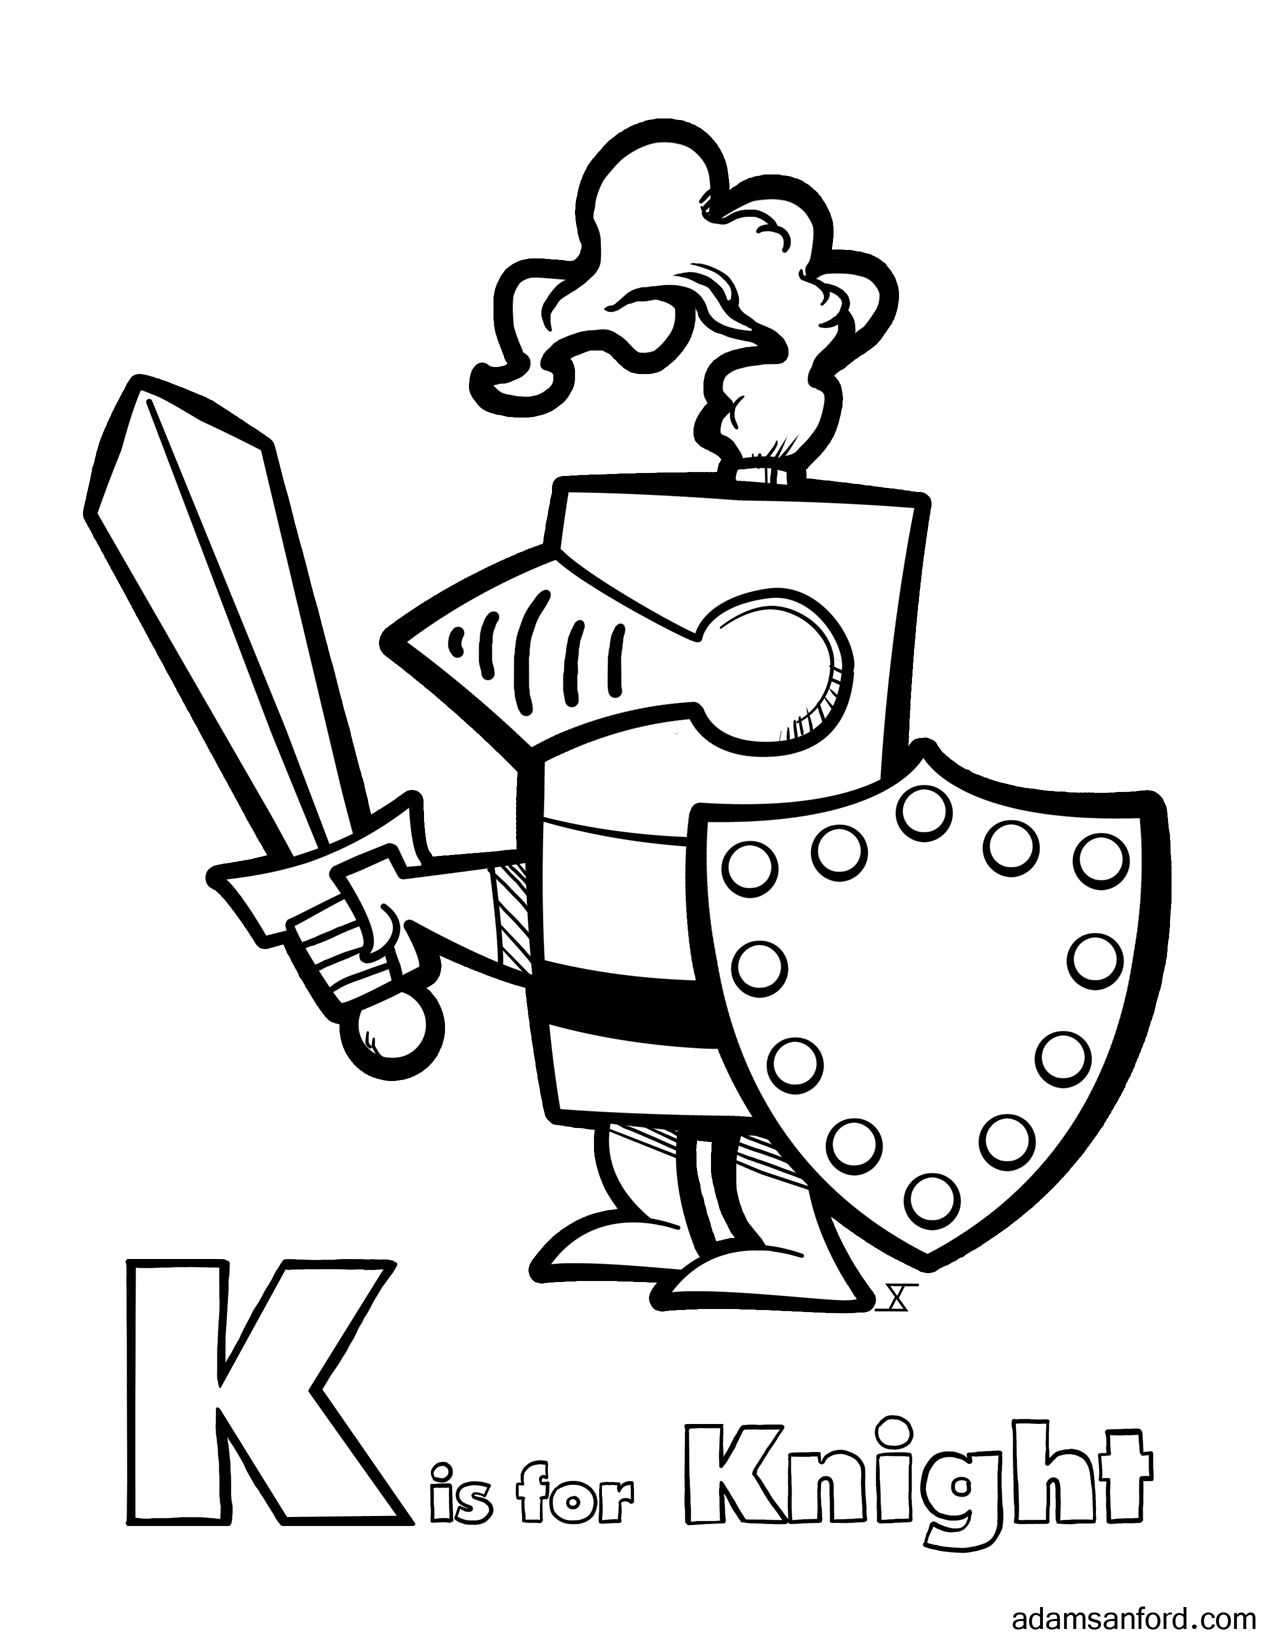 k is for knight coloring page click on the following link to